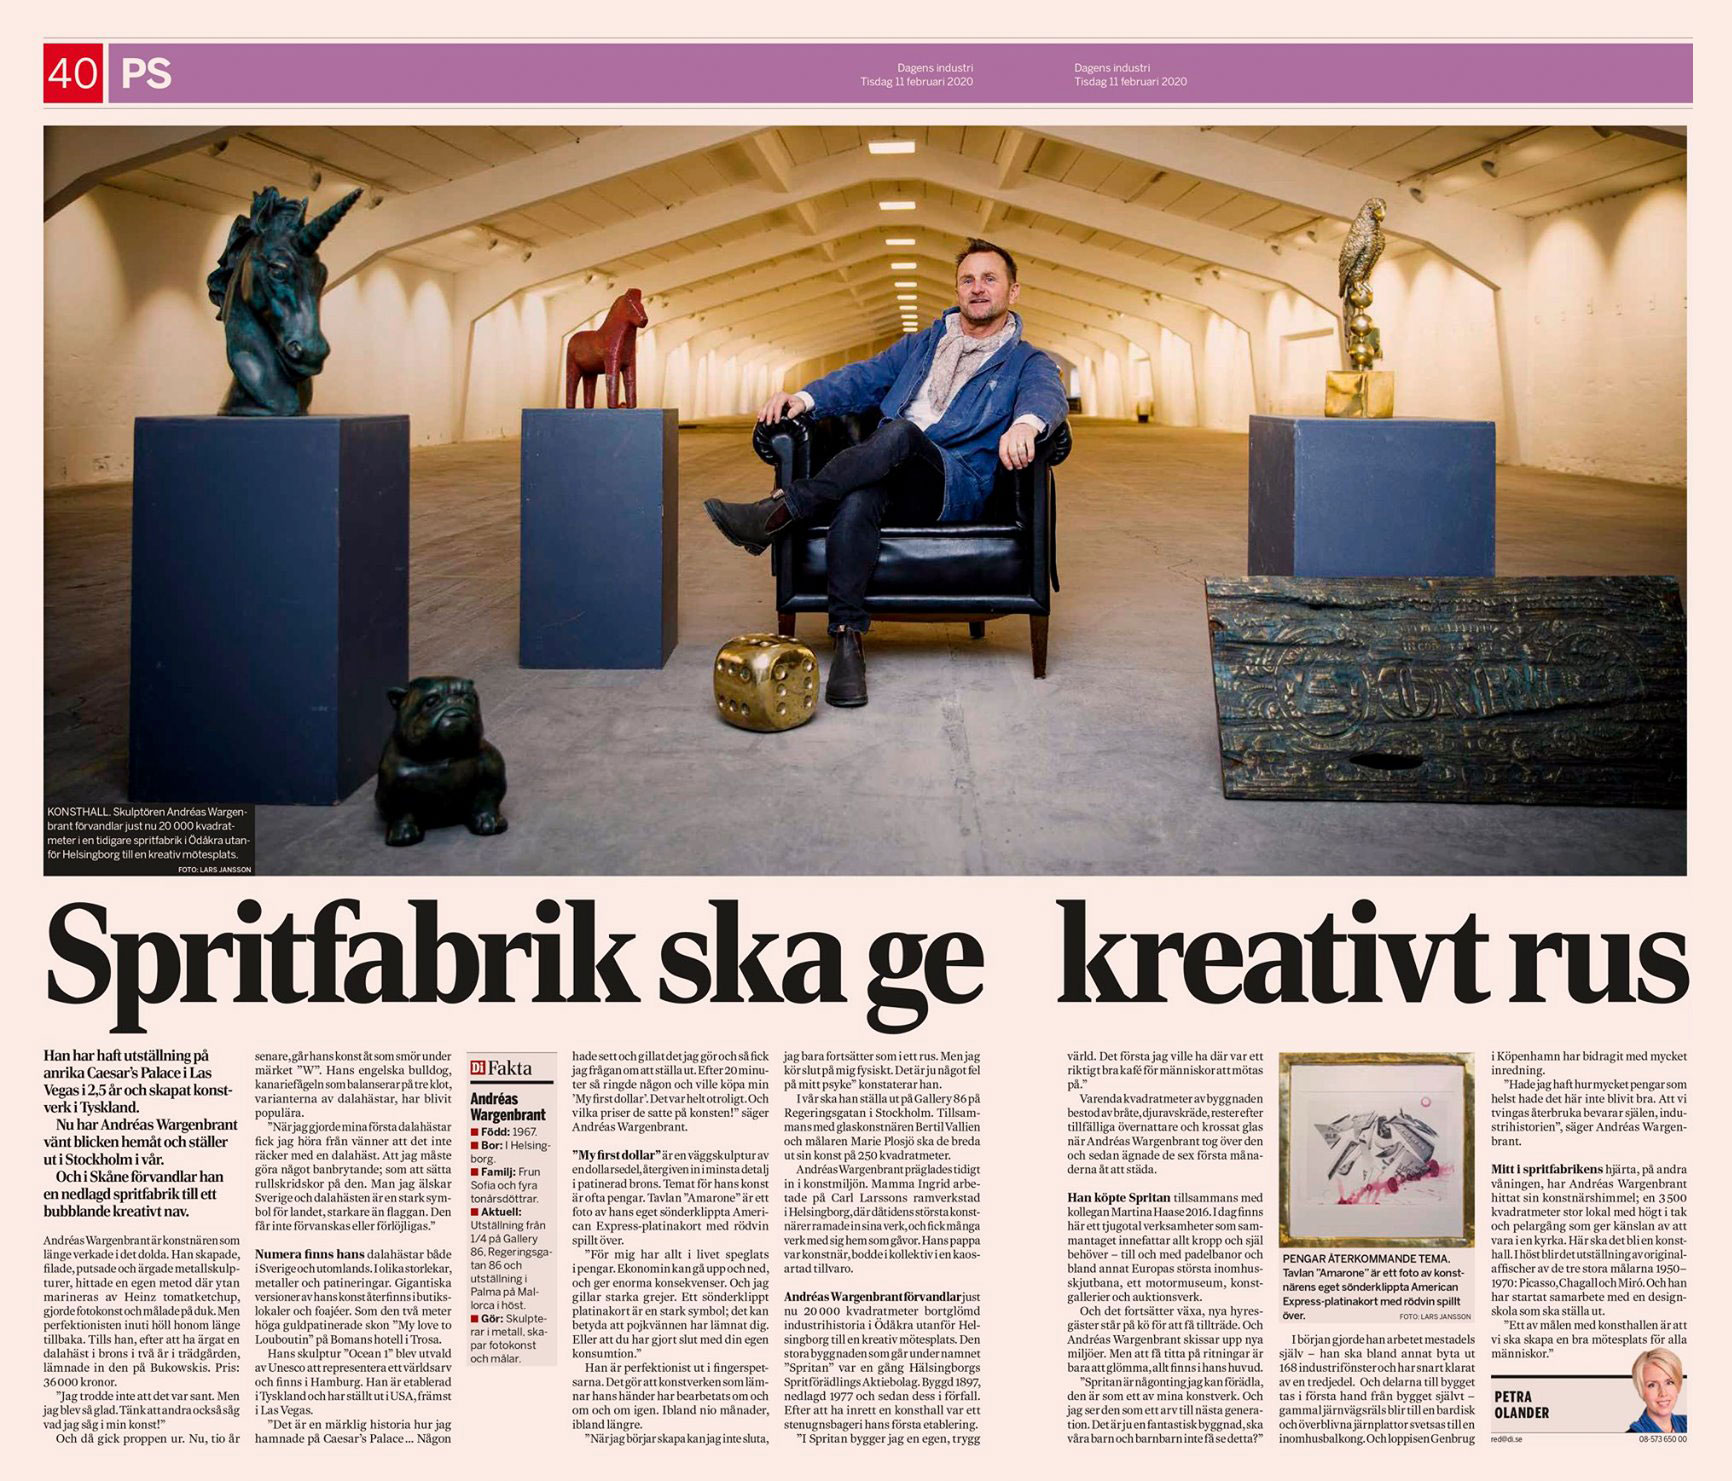 Andreas Wargenbrant in Sweden's leading financial newspaper